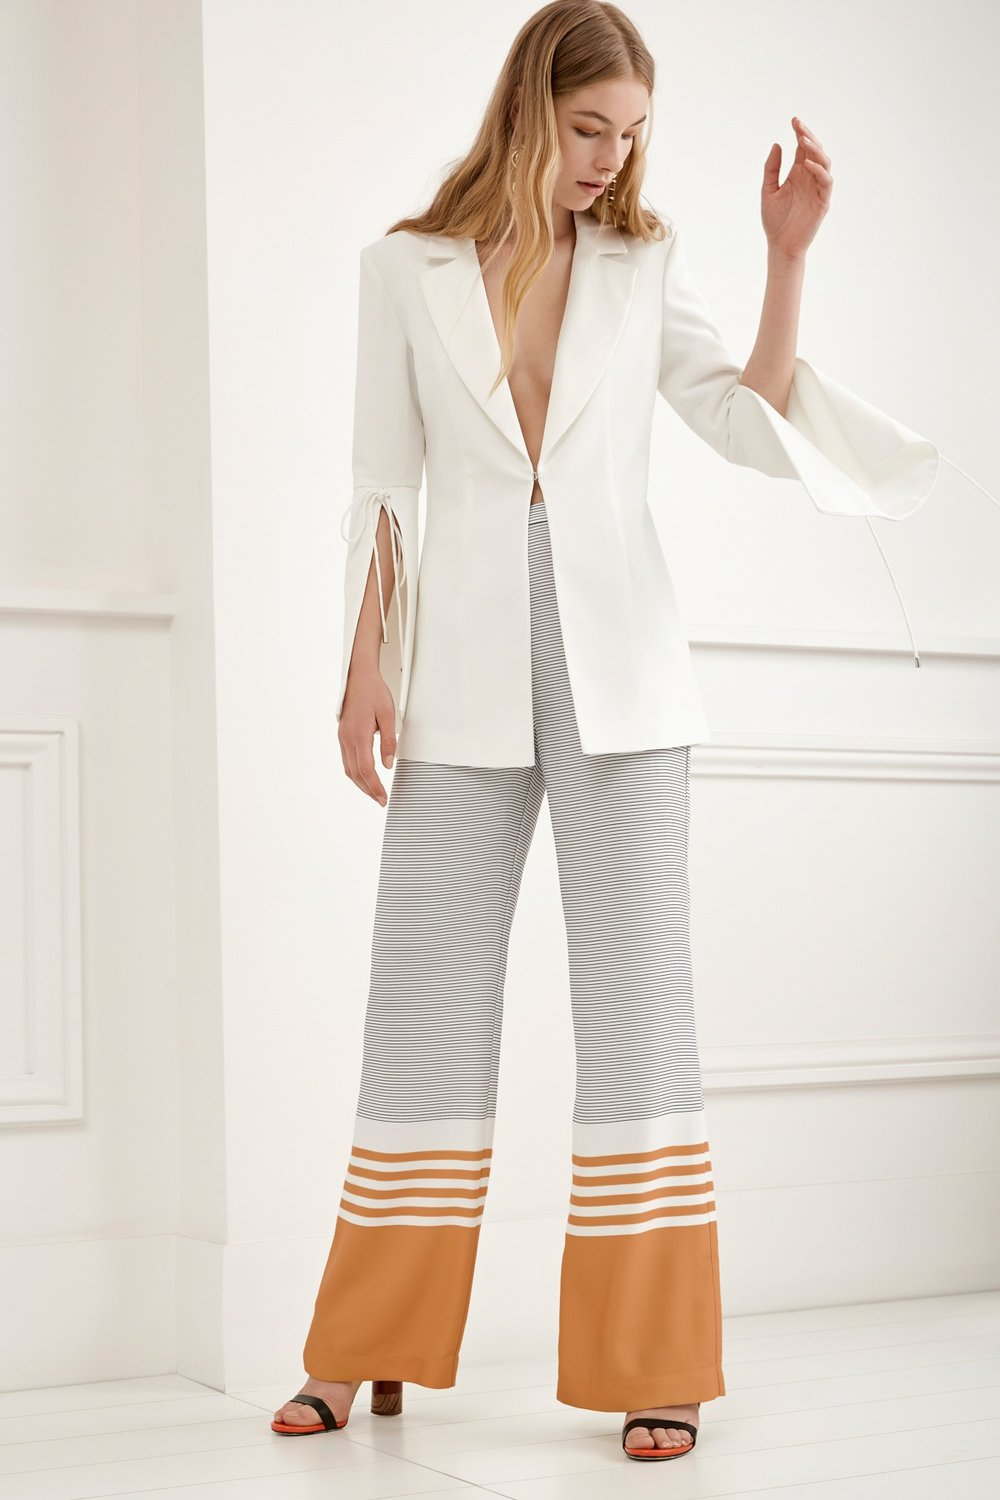 Shop C/MEO Eternity Blazer + Always Waiting Pants.